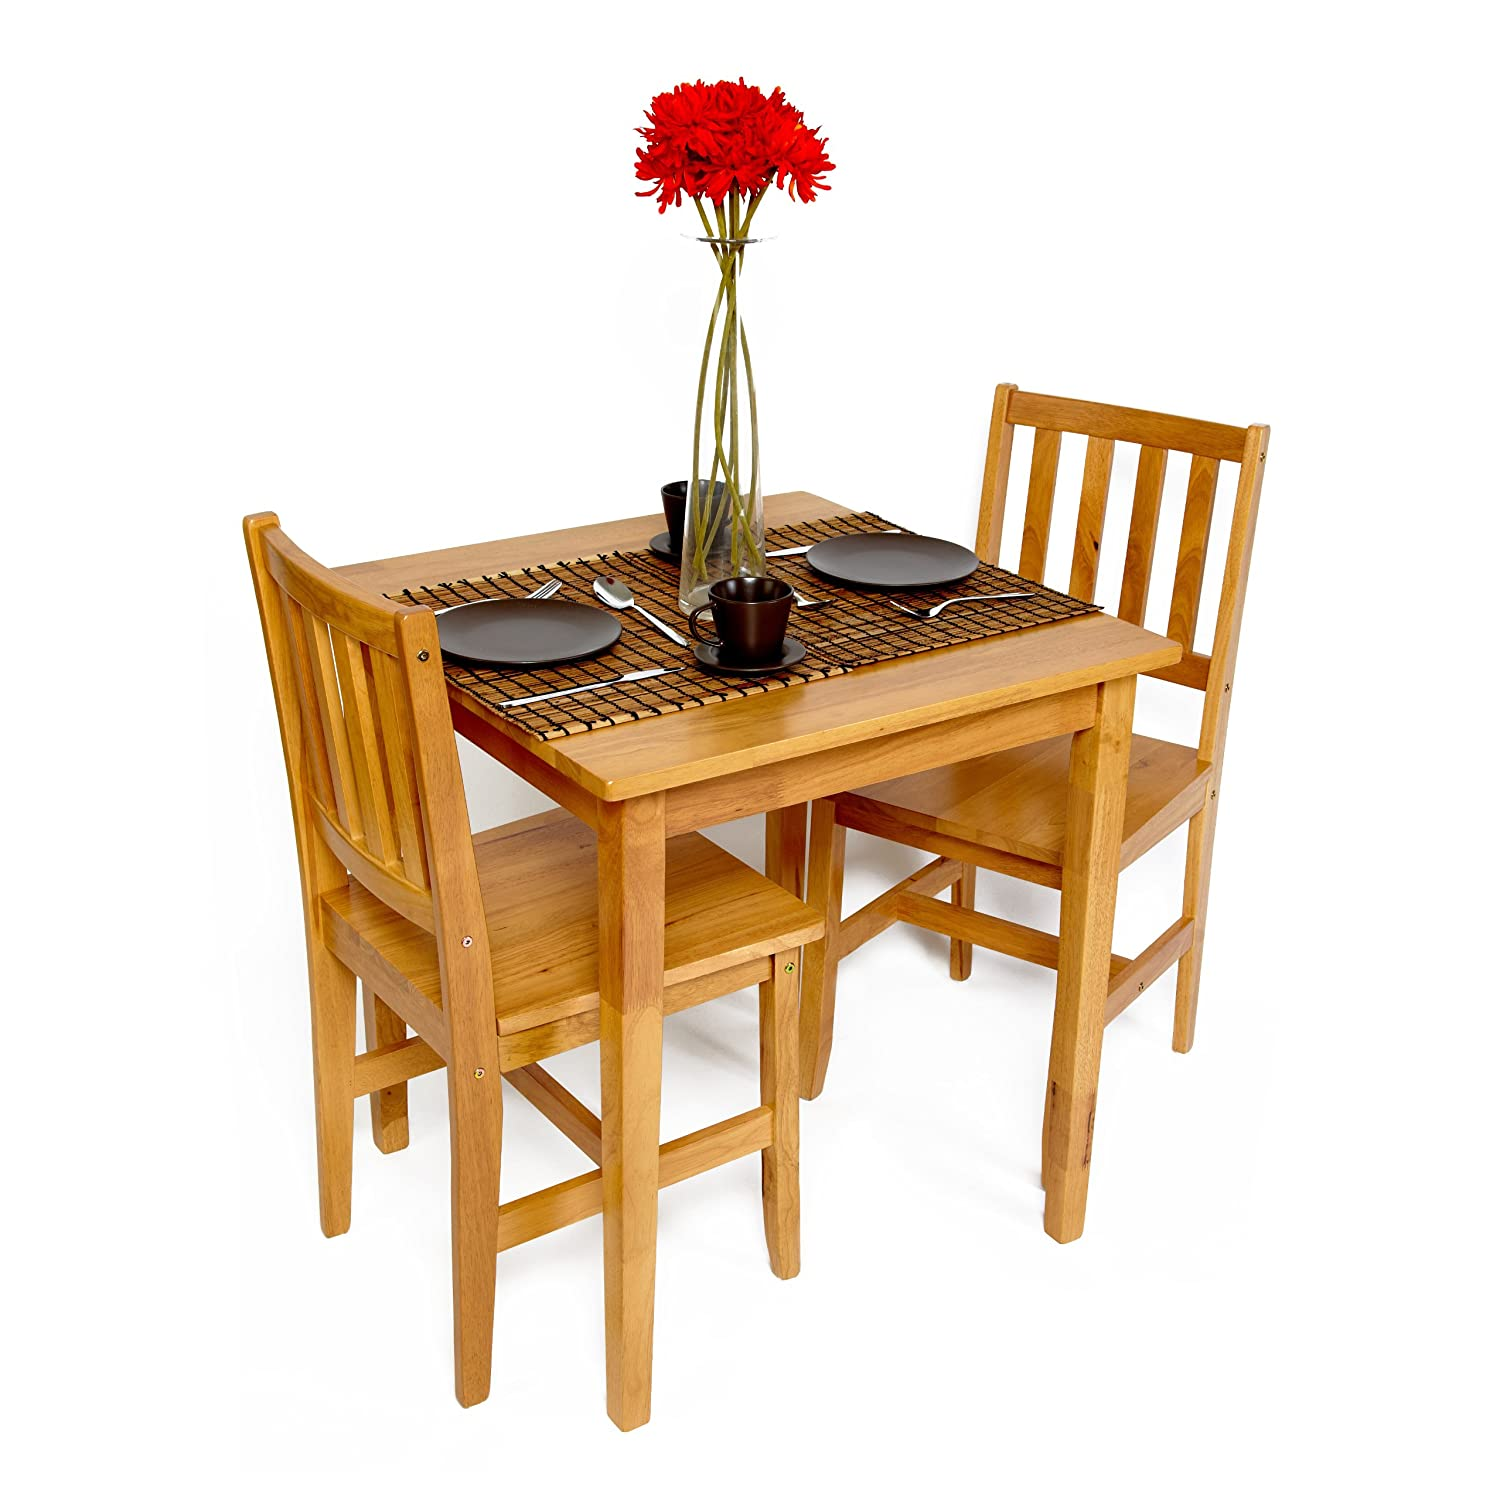 chairs set dining bistro small cafe tables wood wooden 2 chair kitchen